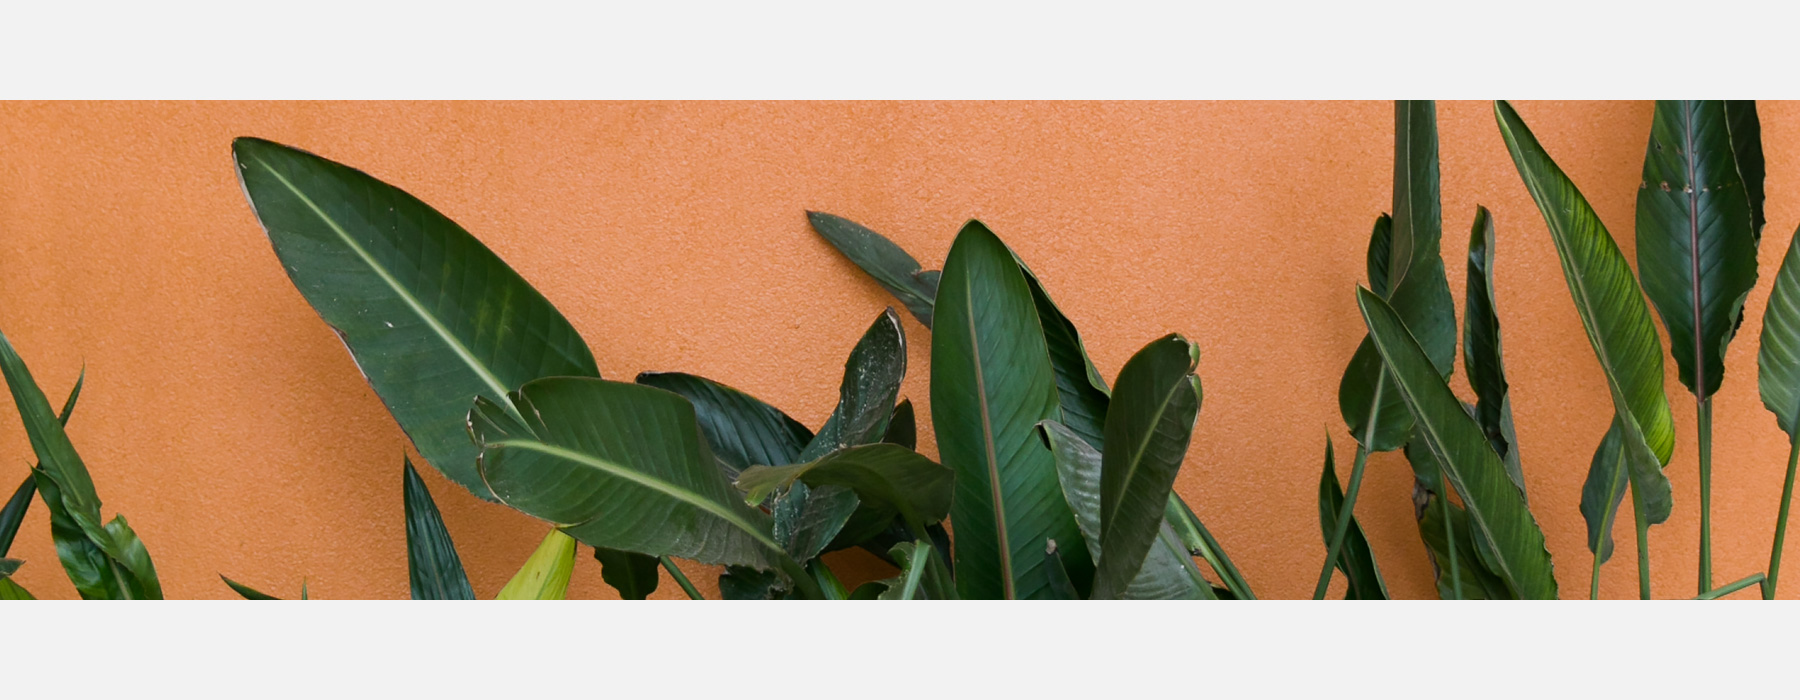 Plants in front of orange background.